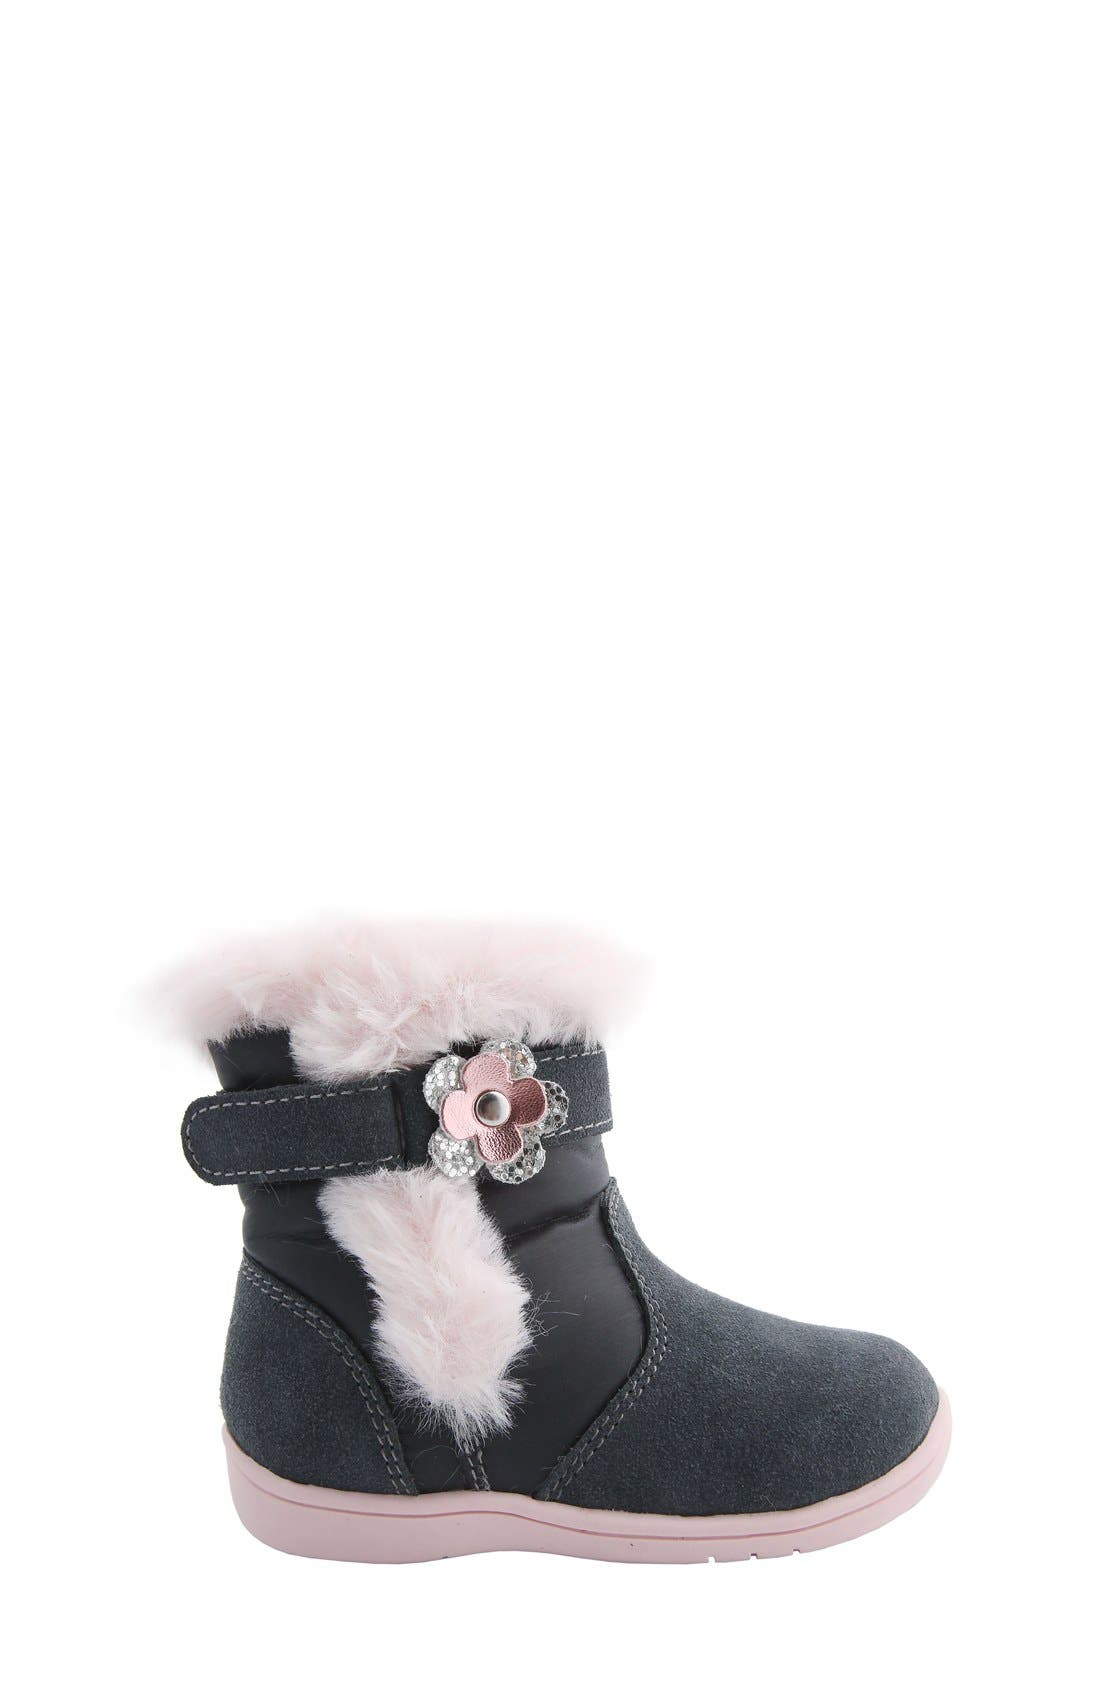 MOBILITY, Nina 'Anya' Faux Fur Bootie, Alternate thumbnail 2, color, GREY SUEDE